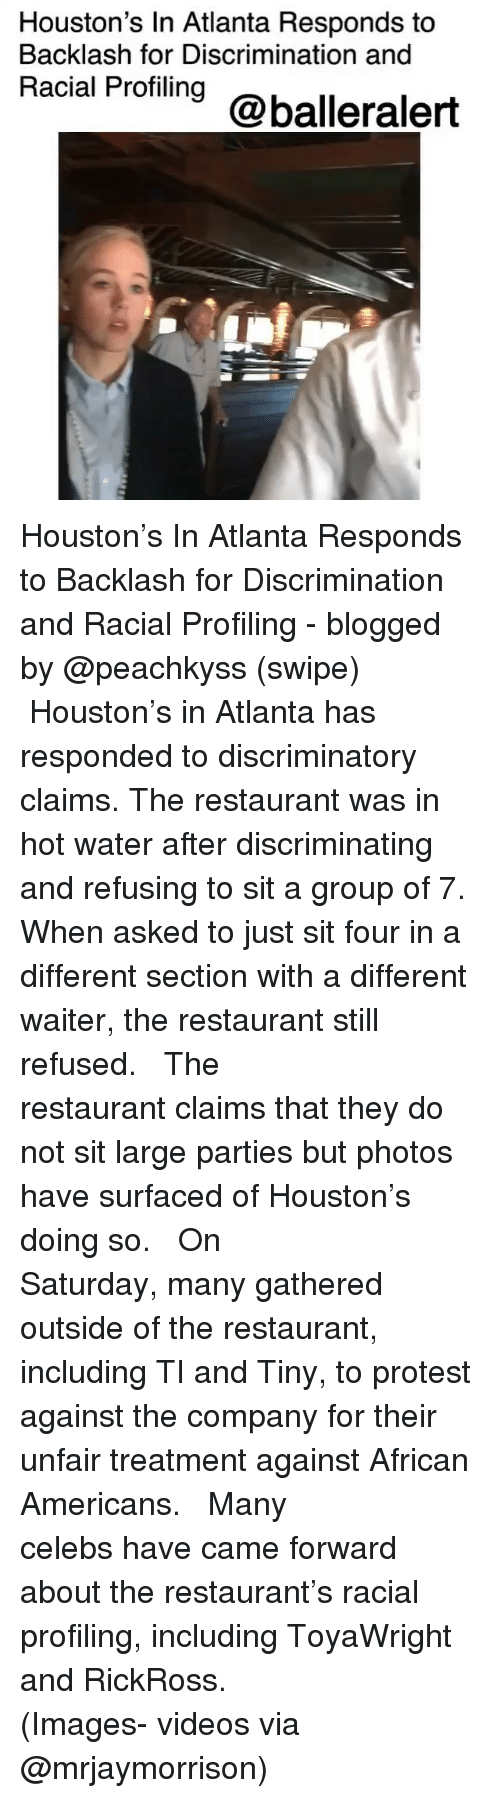 Memes, Protest, and Videos: Houston's In Atlanta Responds to  Backlash for Discrimination and  Racial Profiling@balleraler Houston's In Atlanta Responds to Backlash for Discrimination and Racial Profiling - blogged by @peachkyss (swipe) ⠀⠀⠀⠀⠀⠀⠀ ⠀⠀⠀⠀⠀⠀⠀ Houston's in Atlanta has responded to discriminatory claims. The restaurant was in hot water after discriminating and refusing to sit a group of 7. When asked to just sit four in a different section with a different waiter, the restaurant still refused. ⠀⠀⠀⠀⠀⠀⠀ ⠀⠀⠀⠀⠀⠀⠀ The restaurant claims that they do not sit large parties but photos have surfaced of Houston's doing so. ⠀⠀⠀⠀⠀⠀⠀ ⠀⠀⠀⠀⠀⠀⠀ On Saturday, many gathered outside of the restaurant, including TI and Tiny, to protest against the company for their unfair treatment against African Americans. ⠀⠀⠀⠀⠀⠀⠀ ⠀⠀⠀⠀⠀⠀⠀ Many celebs have came forward about the restaurant's racial profiling, including ToyaWright and RickRoss. ⠀⠀⠀⠀⠀⠀⠀ ⠀⠀⠀⠀⠀⠀⠀ (Images- videos via @mrjaymorrison)